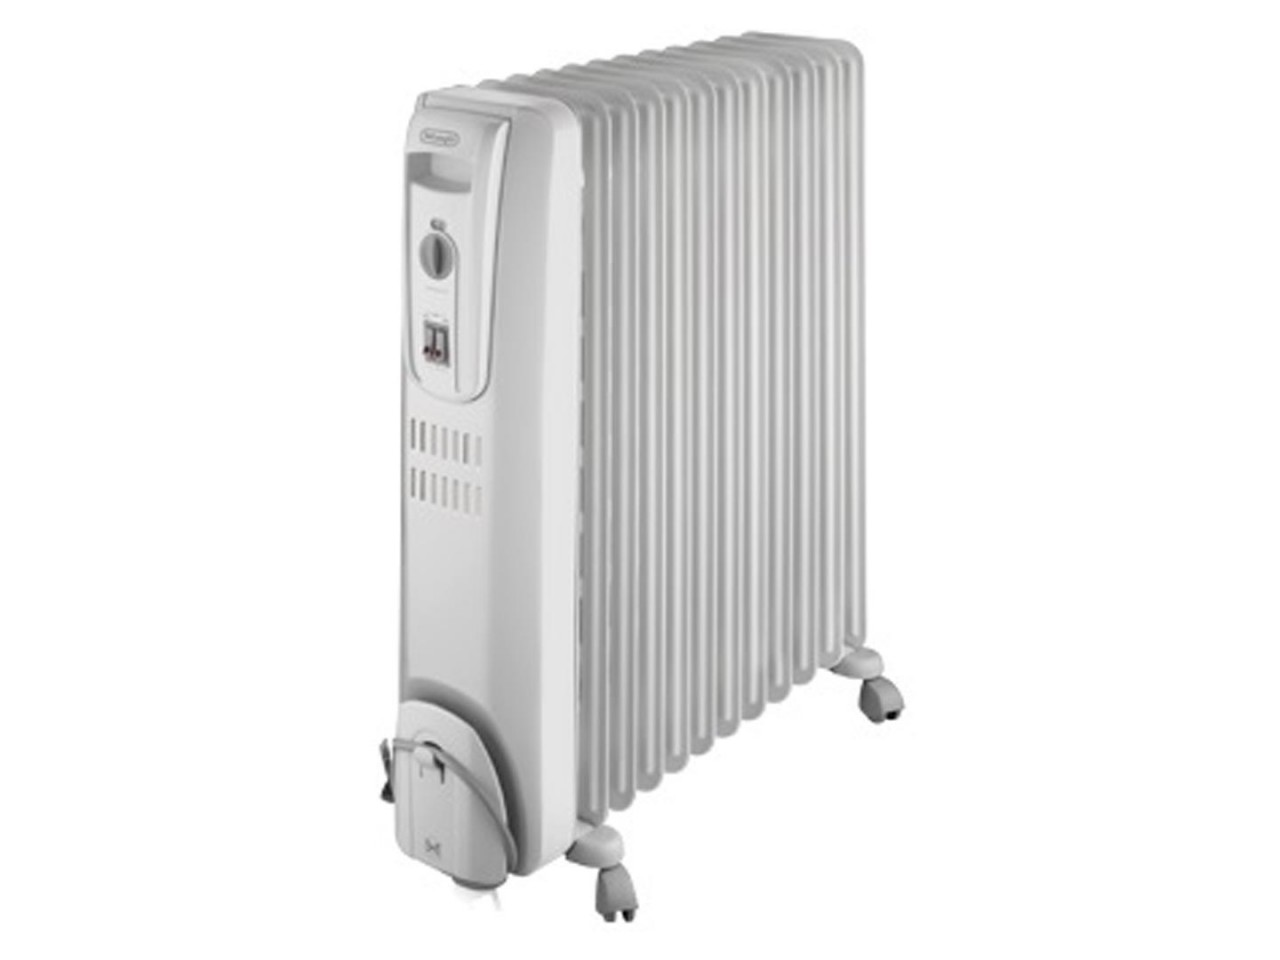 delonghi kh771224 electric oil heater price in pakistan. Black Bedroom Furniture Sets. Home Design Ideas